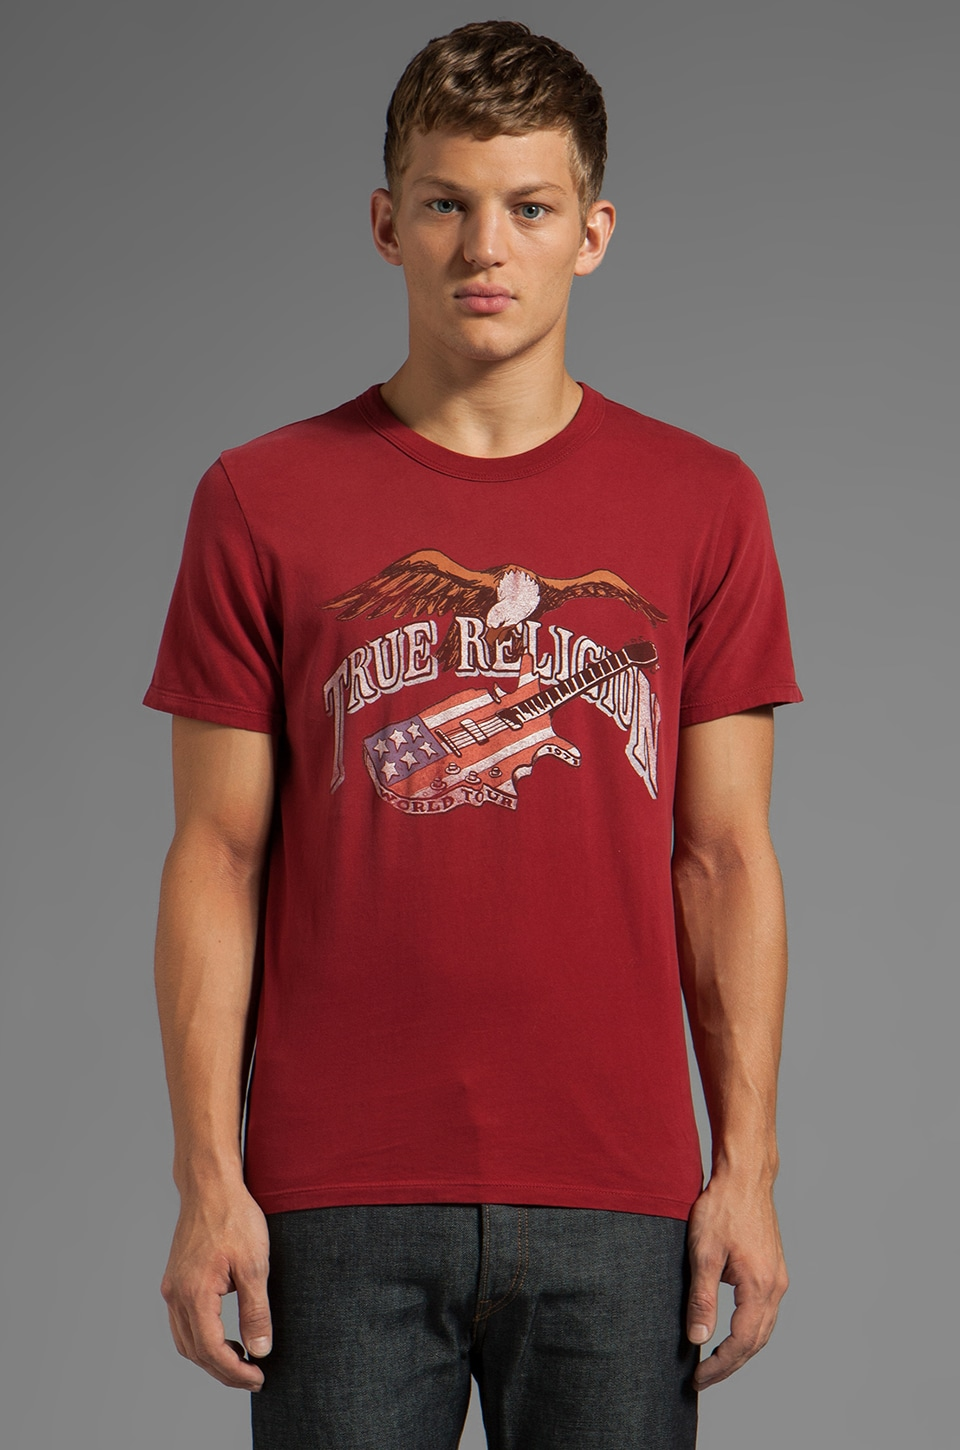 True Religion Eagel Guitar Tee in Crimson